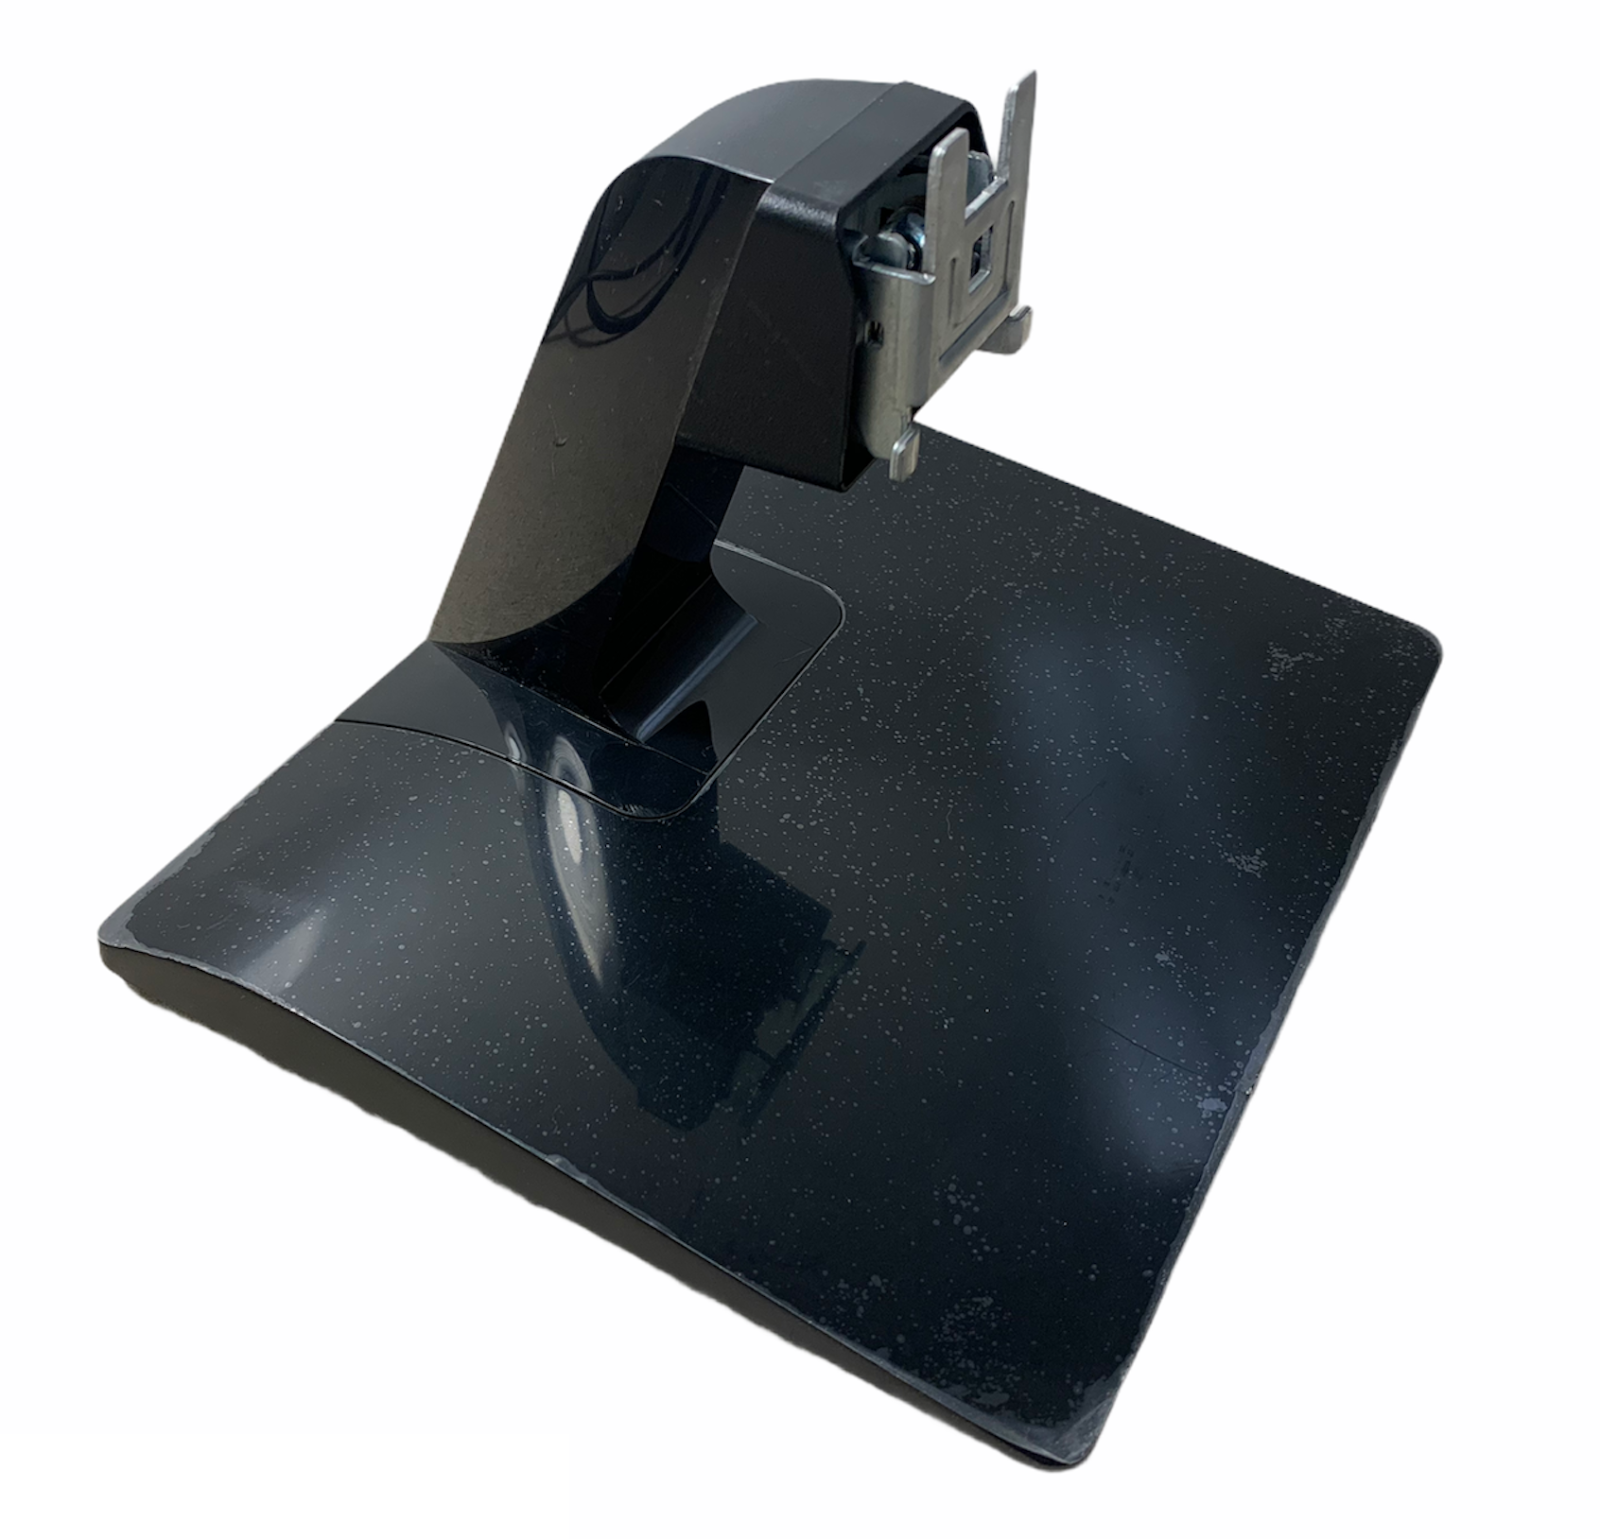 ORIGINAL HP Replacement Stand/Base for HP 22m, HP 24m, & HP